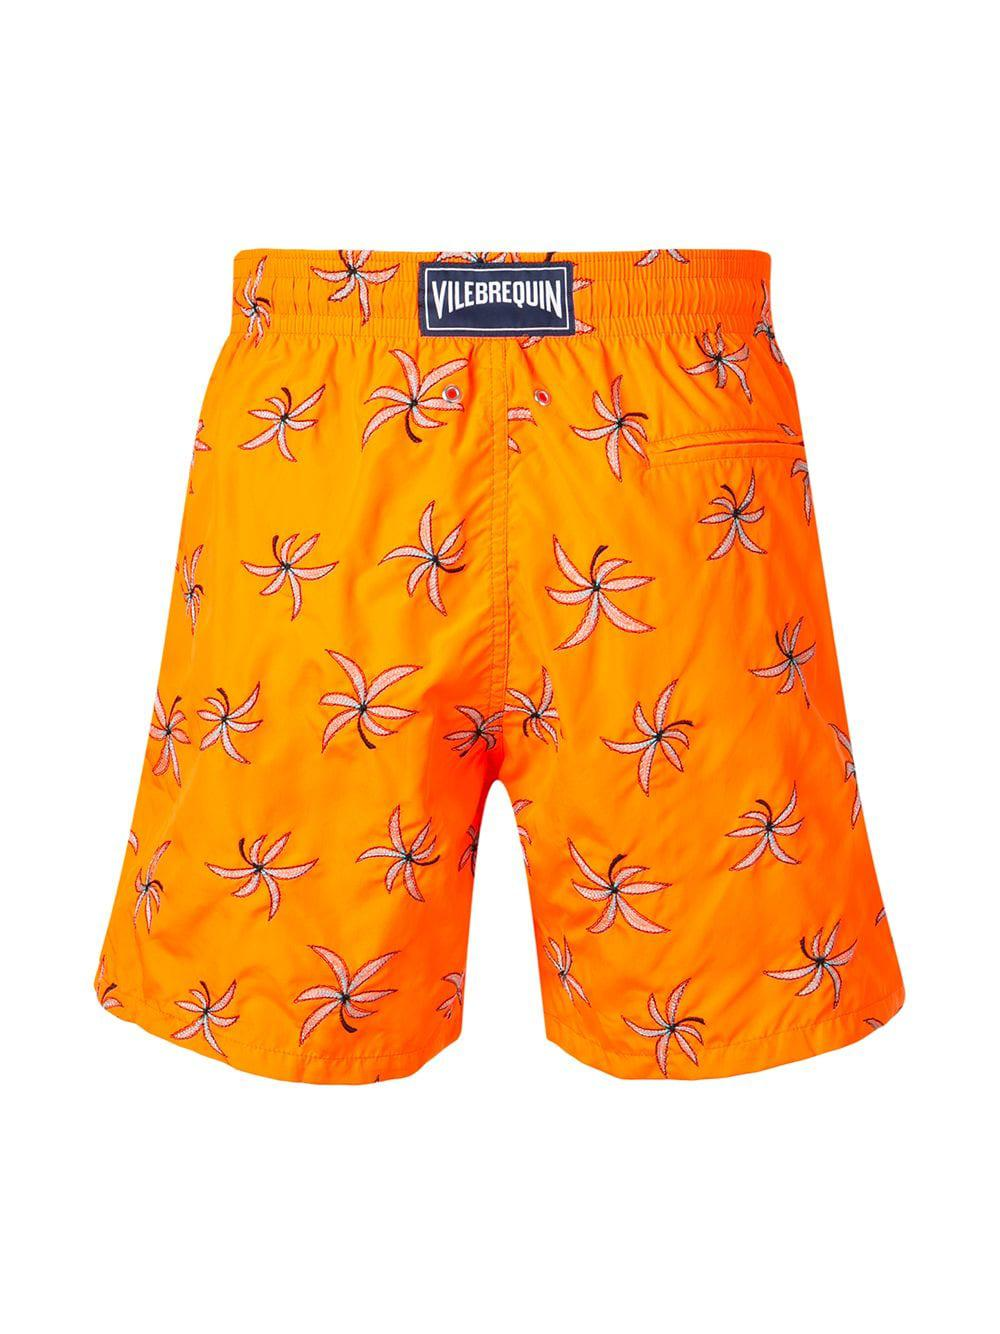 c4243356ab Lyst - Vilebrequin Floral Embroidery Swim Trunks in Orange for Men